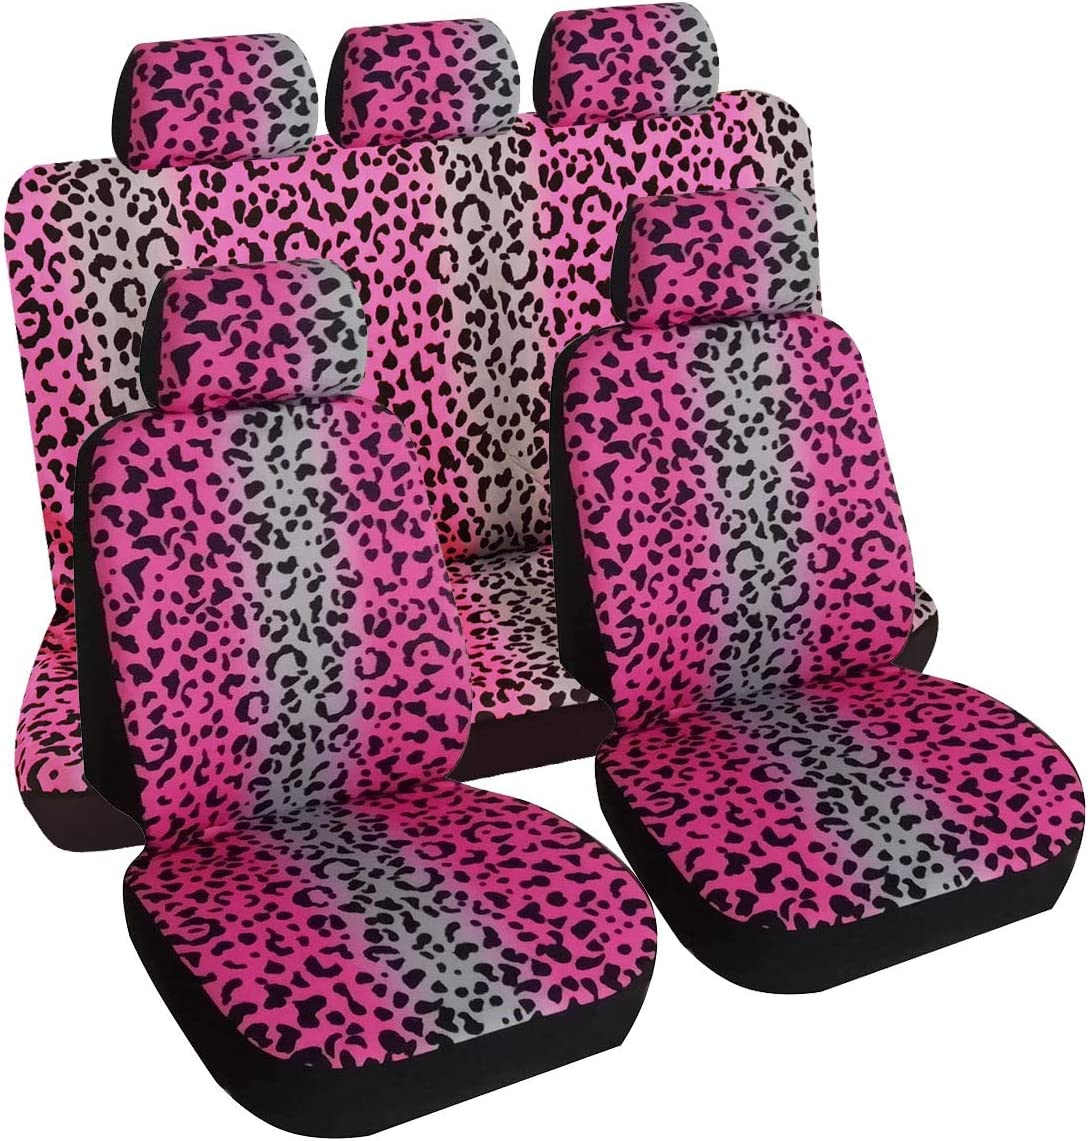 KANGLIDA Leopard Animal Print OFFer Car Seat Full Vehicle Choice S Covers Set